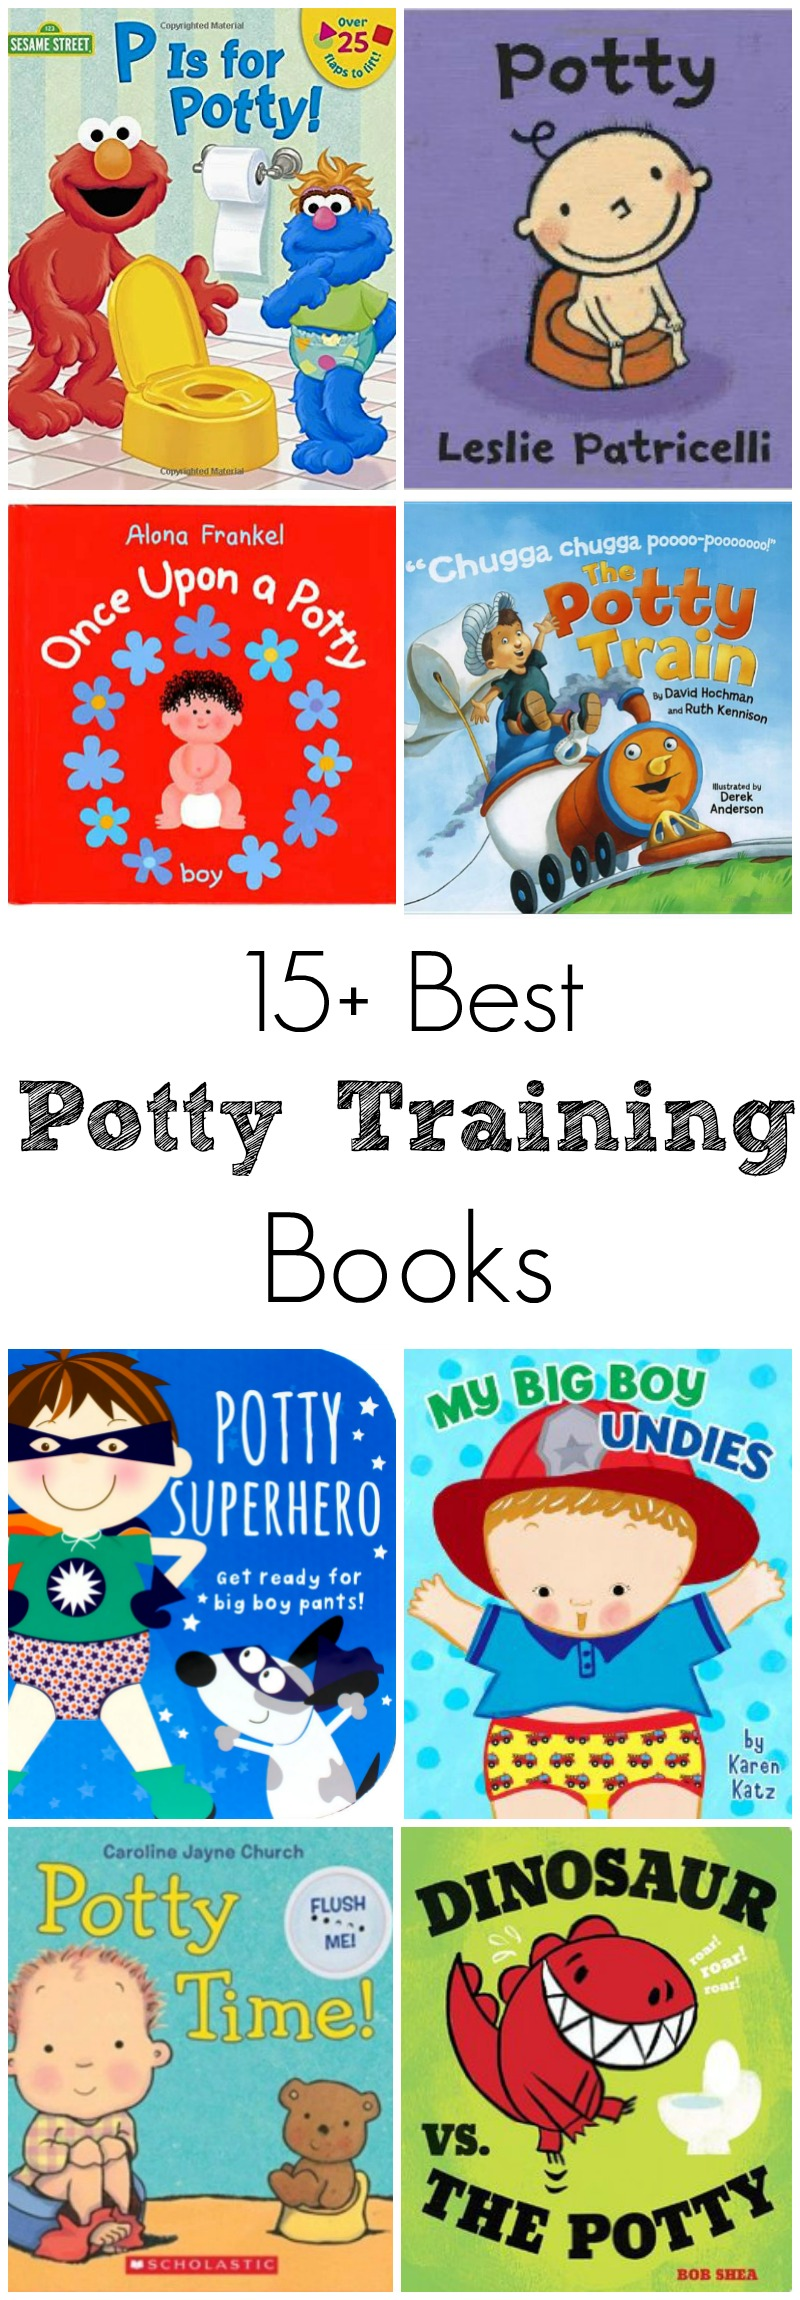 Best Potty Training Books for Toddlers // Life Anchored